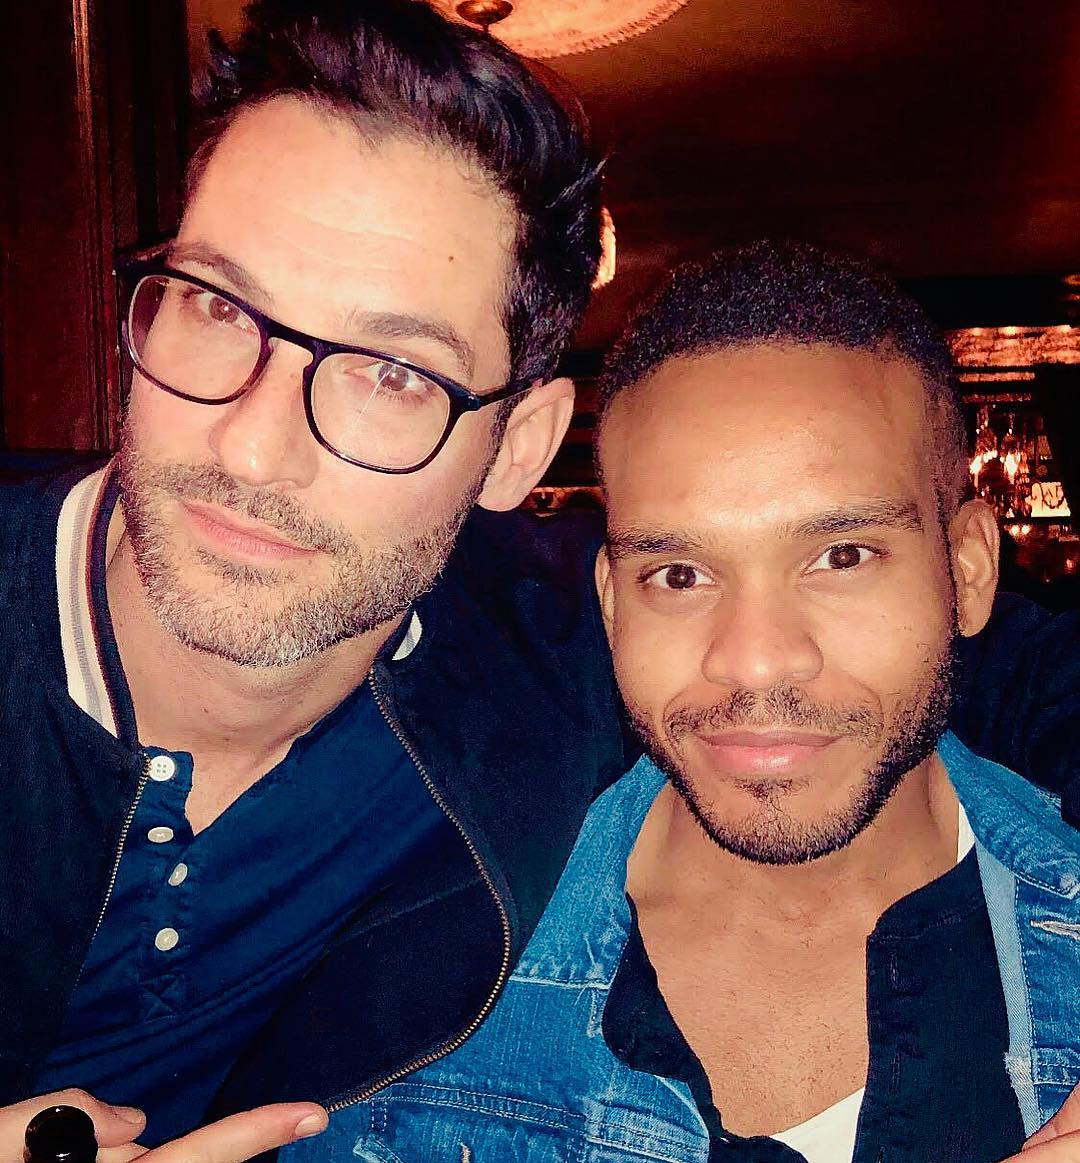 New Tom Ellis Bts Pictures And Videos Lucifer Season 4: Pictures And Videos Of Tom Ellis From The Lucifer S4 Wrap